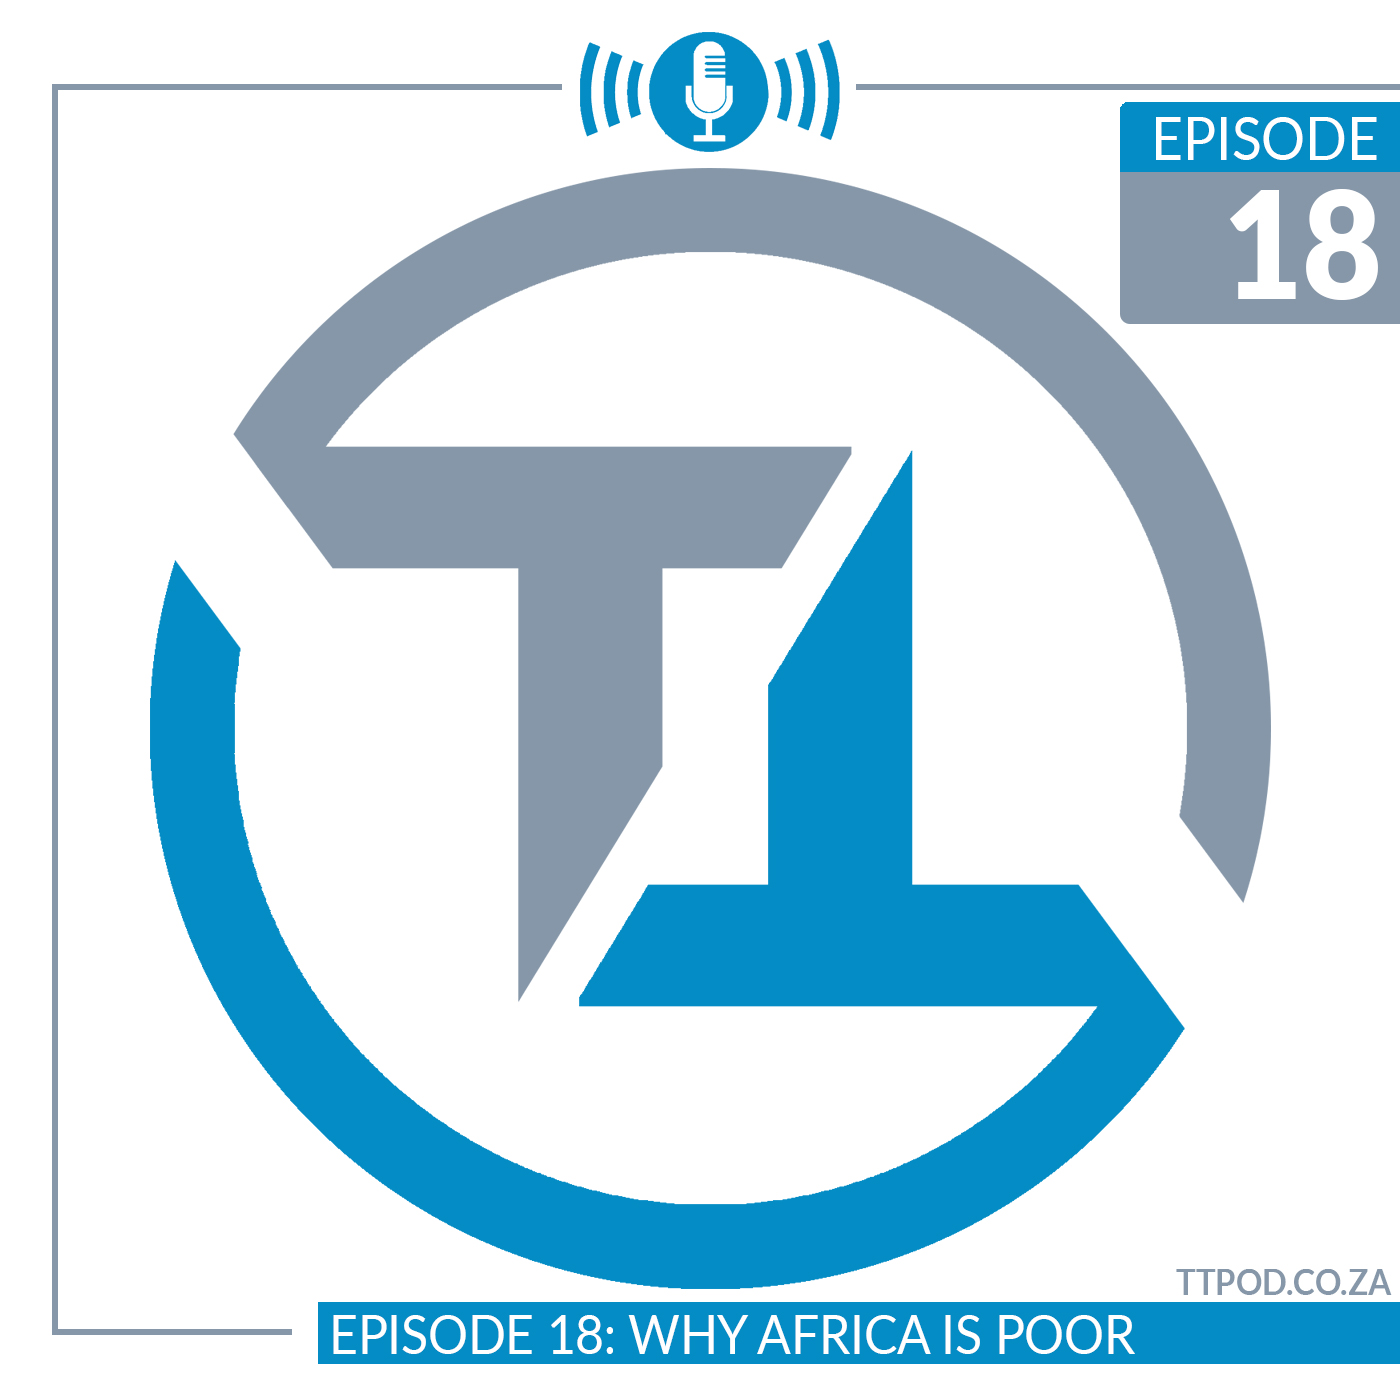 Episode 18: Why Africa is Poor